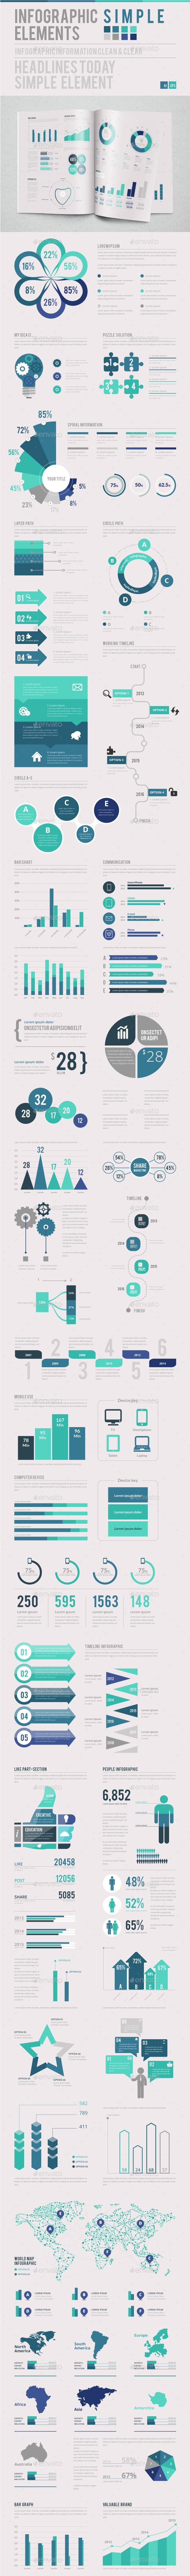 Infographic Simple - Infographics